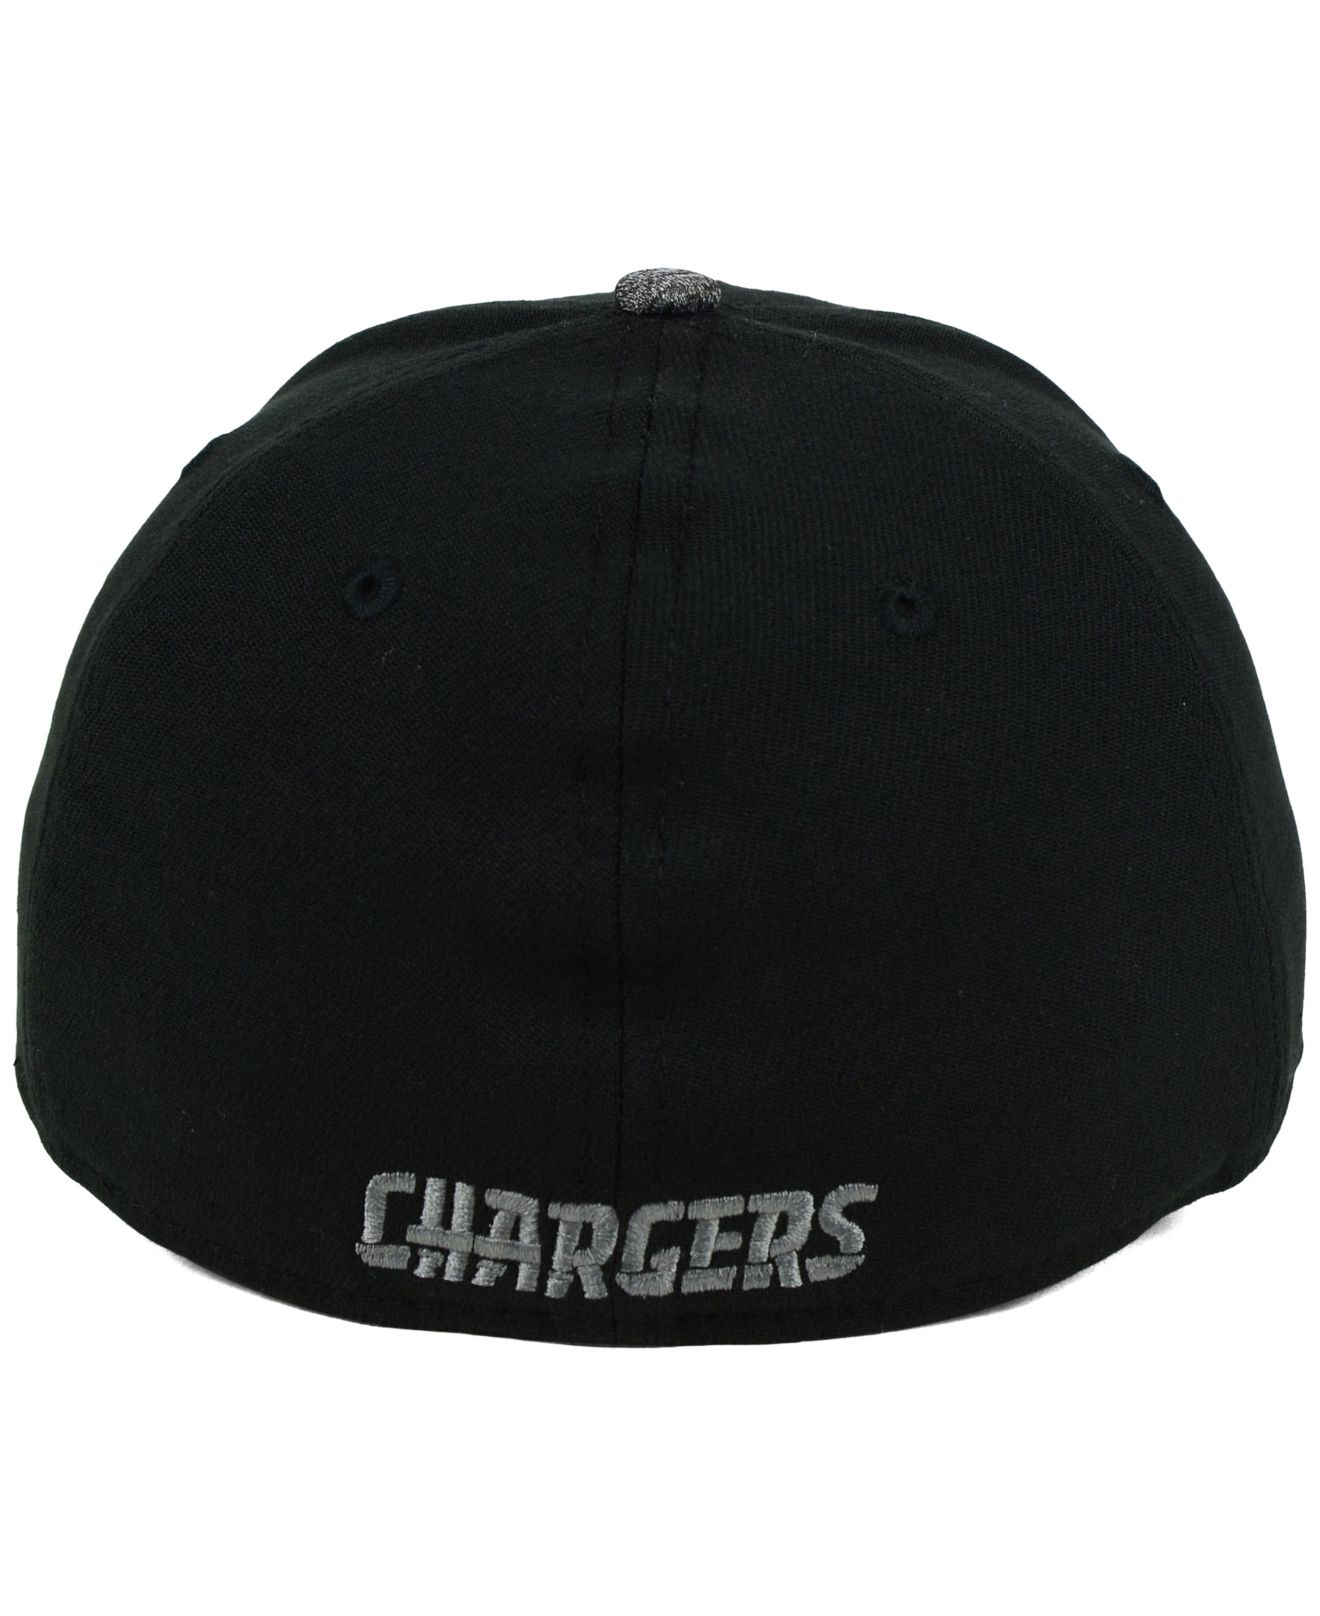 Men S San Diego Chargers New Era Heathered Gray 2 Striped